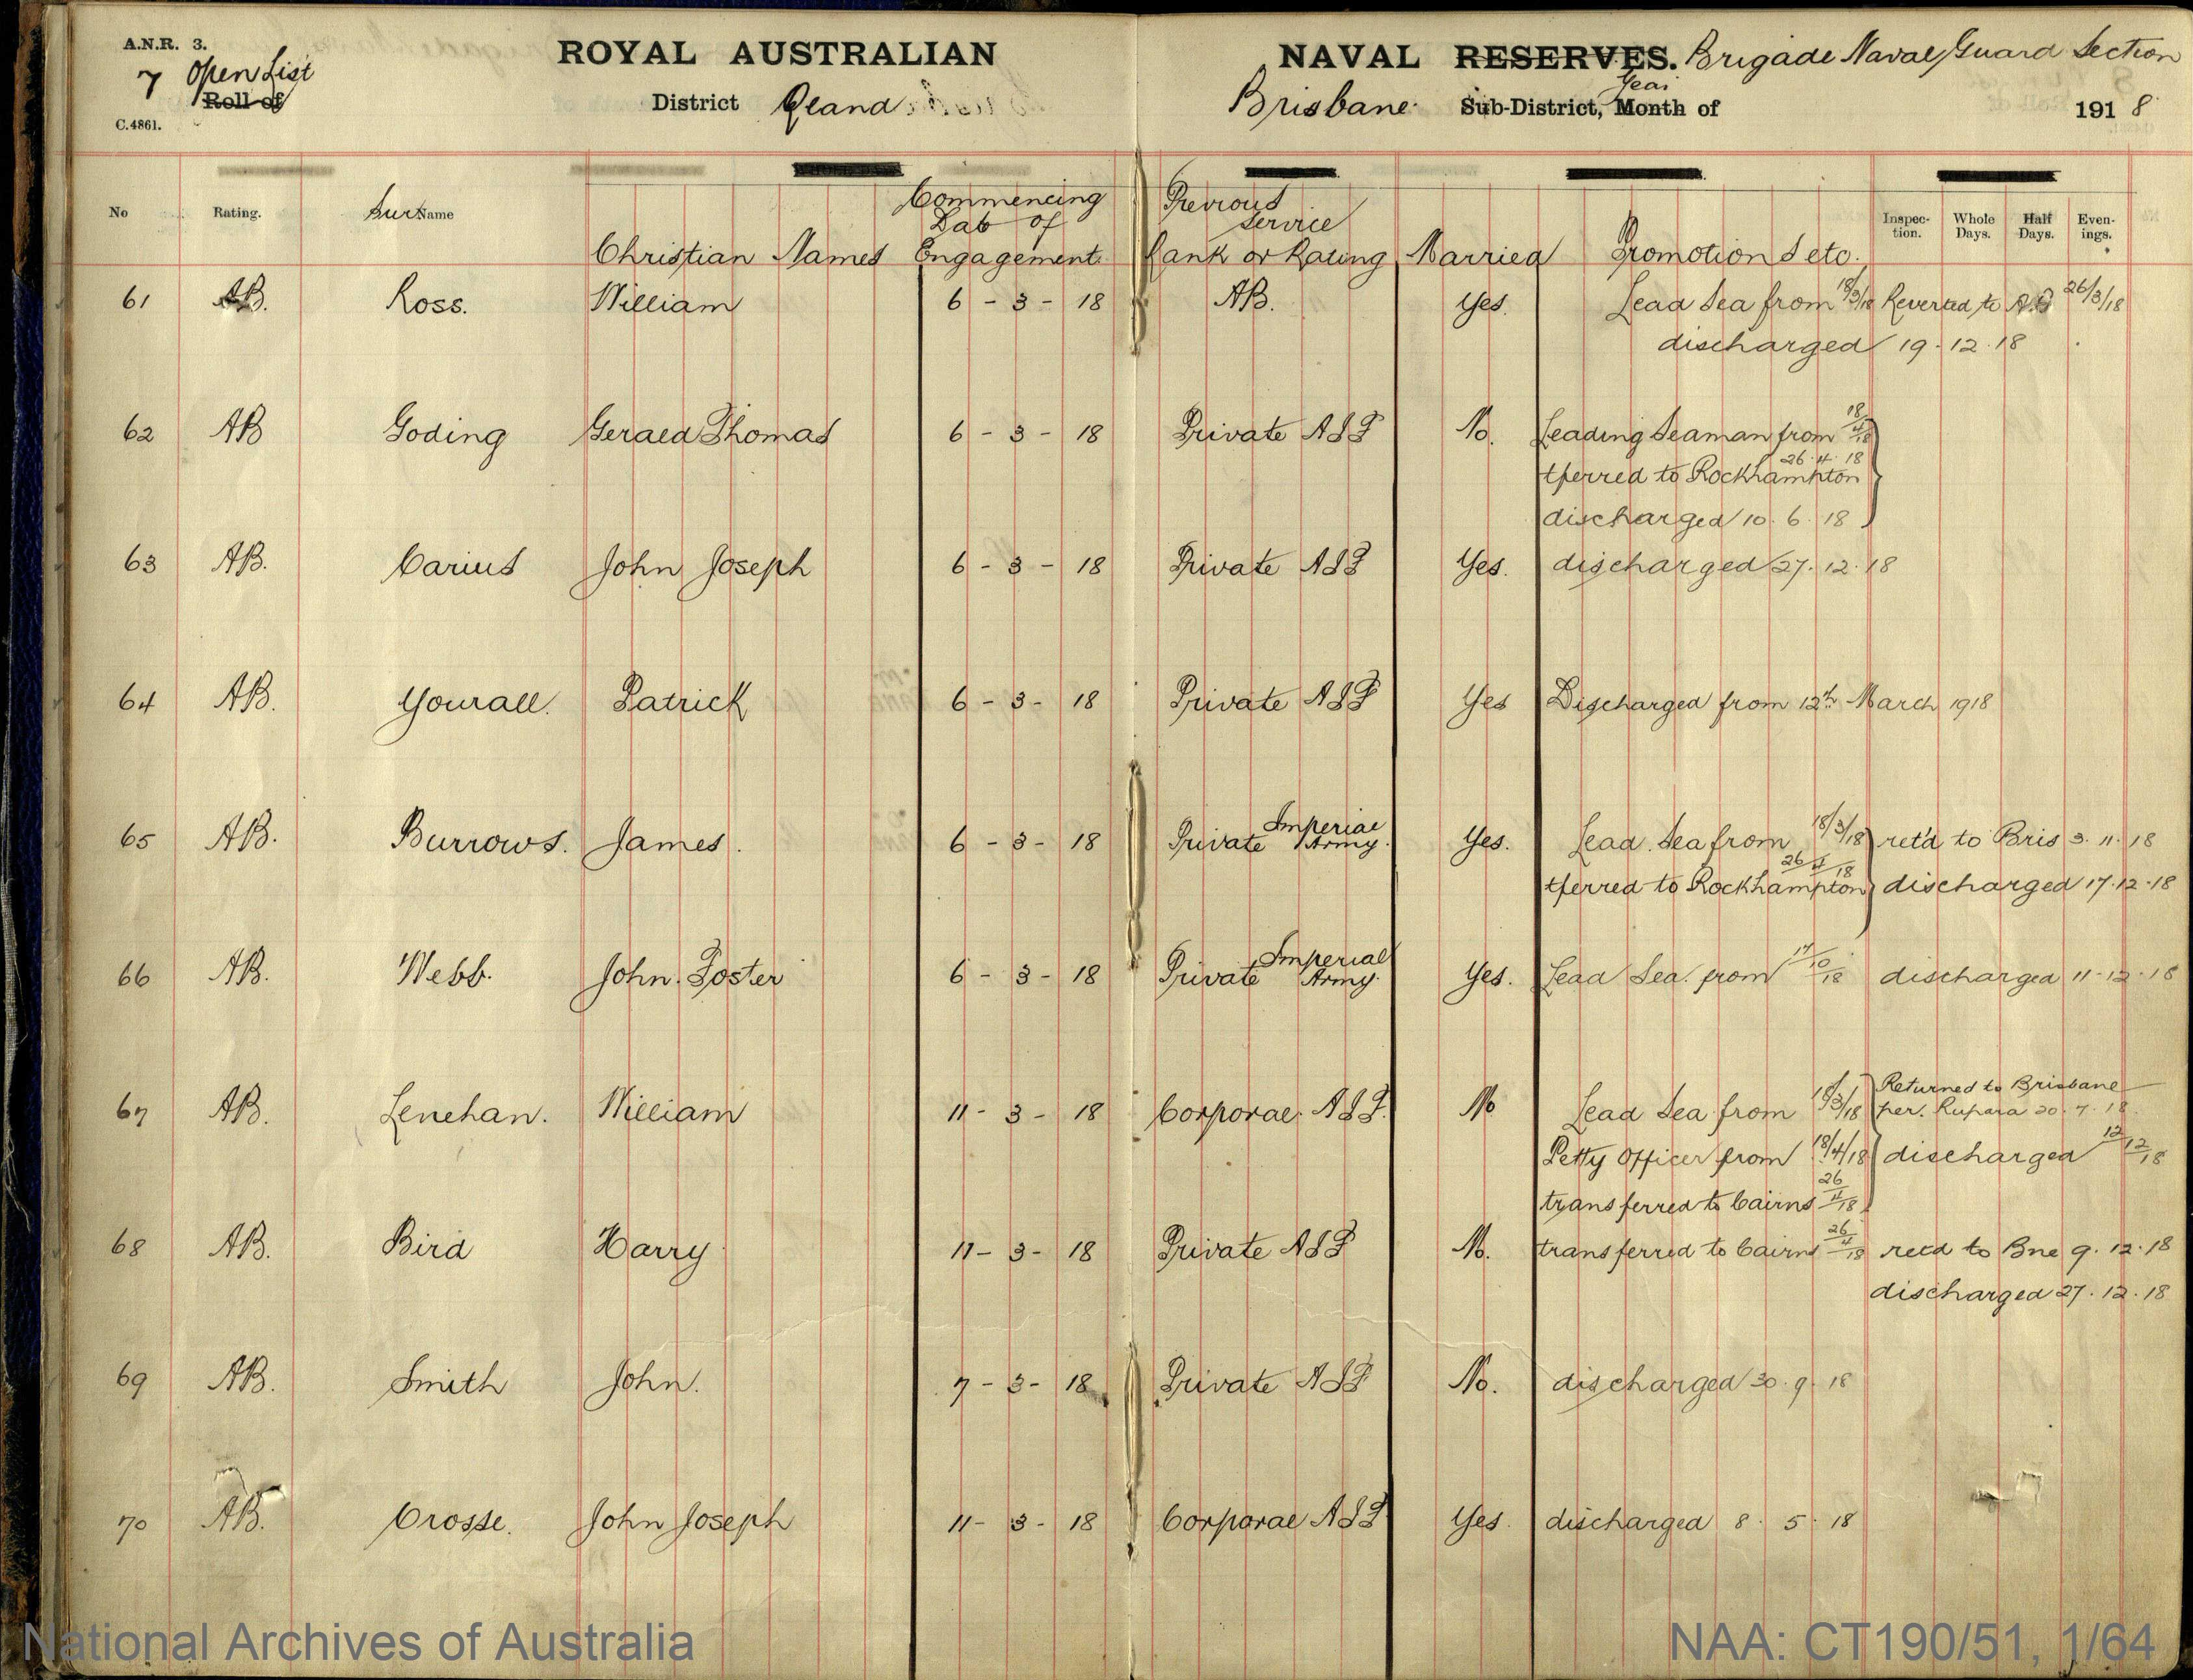 SURNAME - YOURALL;  GIVEN NAME(S) - Patrick;  OFFICIAL NUMBER - 64;  DATE OF BIRTH - [Unknown];  PLACE OF BIRTH - [Unknown];  NEXT OF KIN - [Unknown];  SERVICE/STATION - Queensland;  REGISTRATION DATE -  6 March 1918